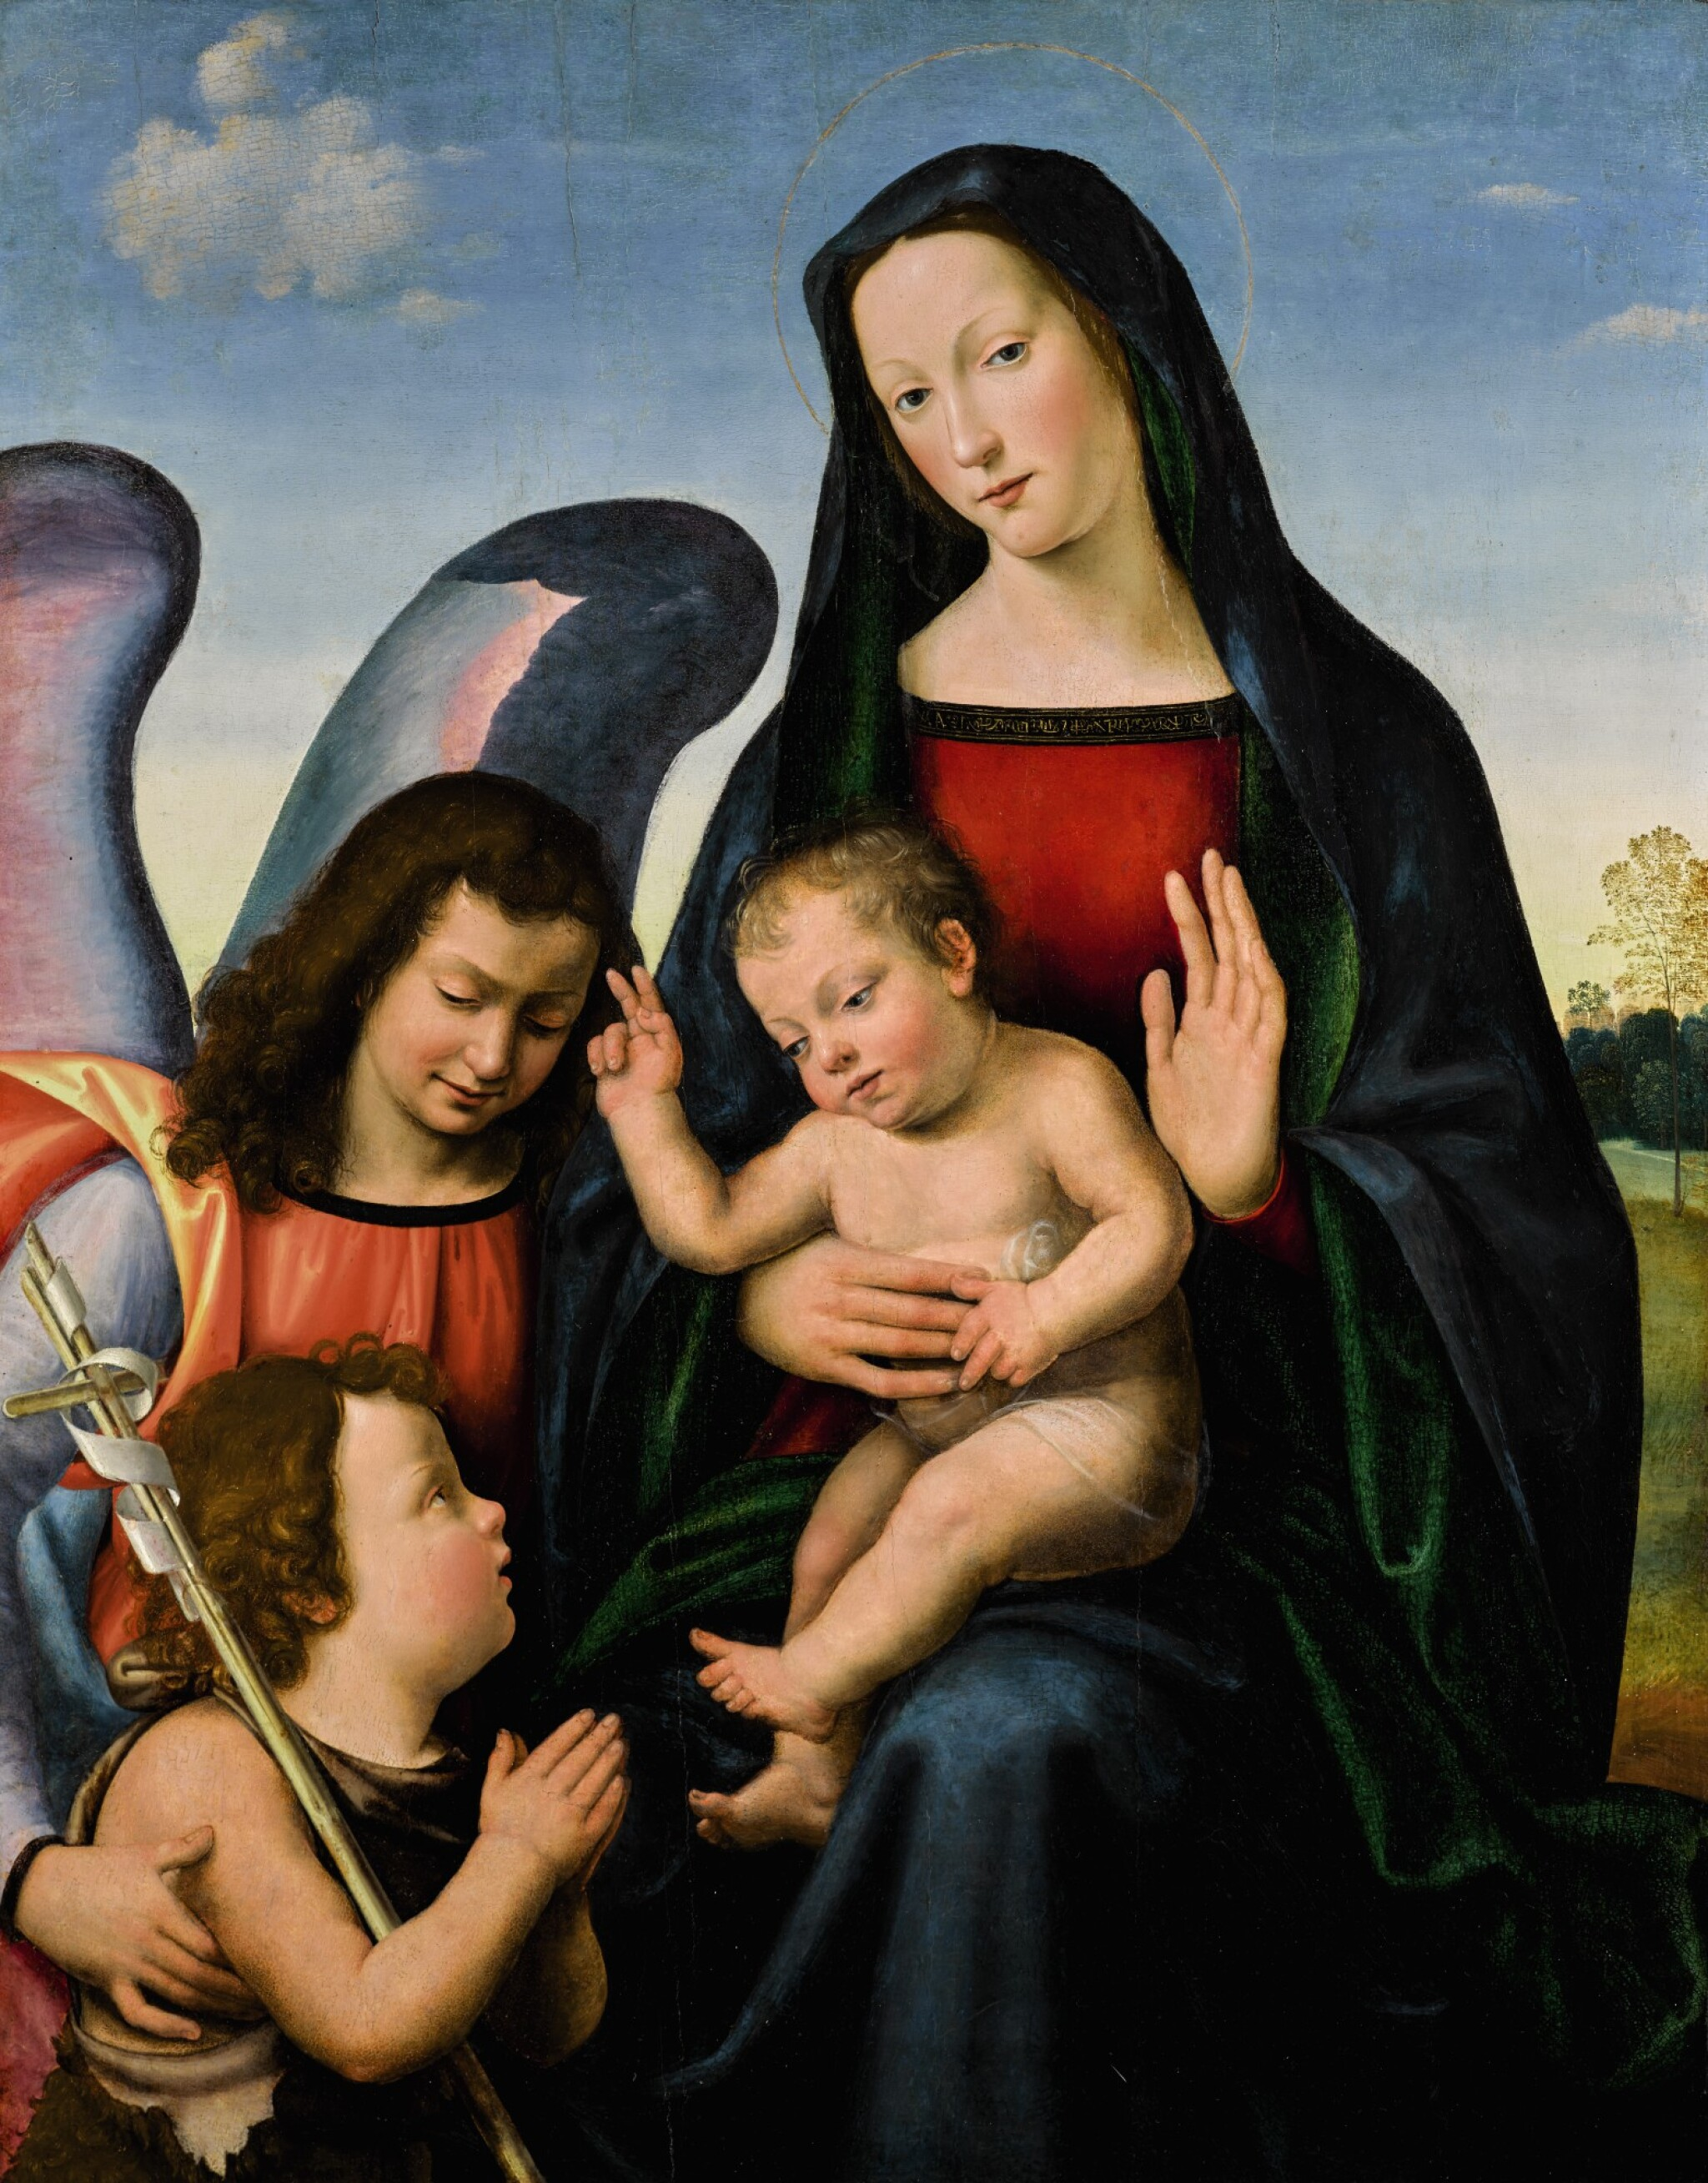 View 1 of Lot 2. The Virgin and Child with the young Saint John the Baptist and an angel | 《聖母與聖嬰、少年施洗者聖約翰及天使》.